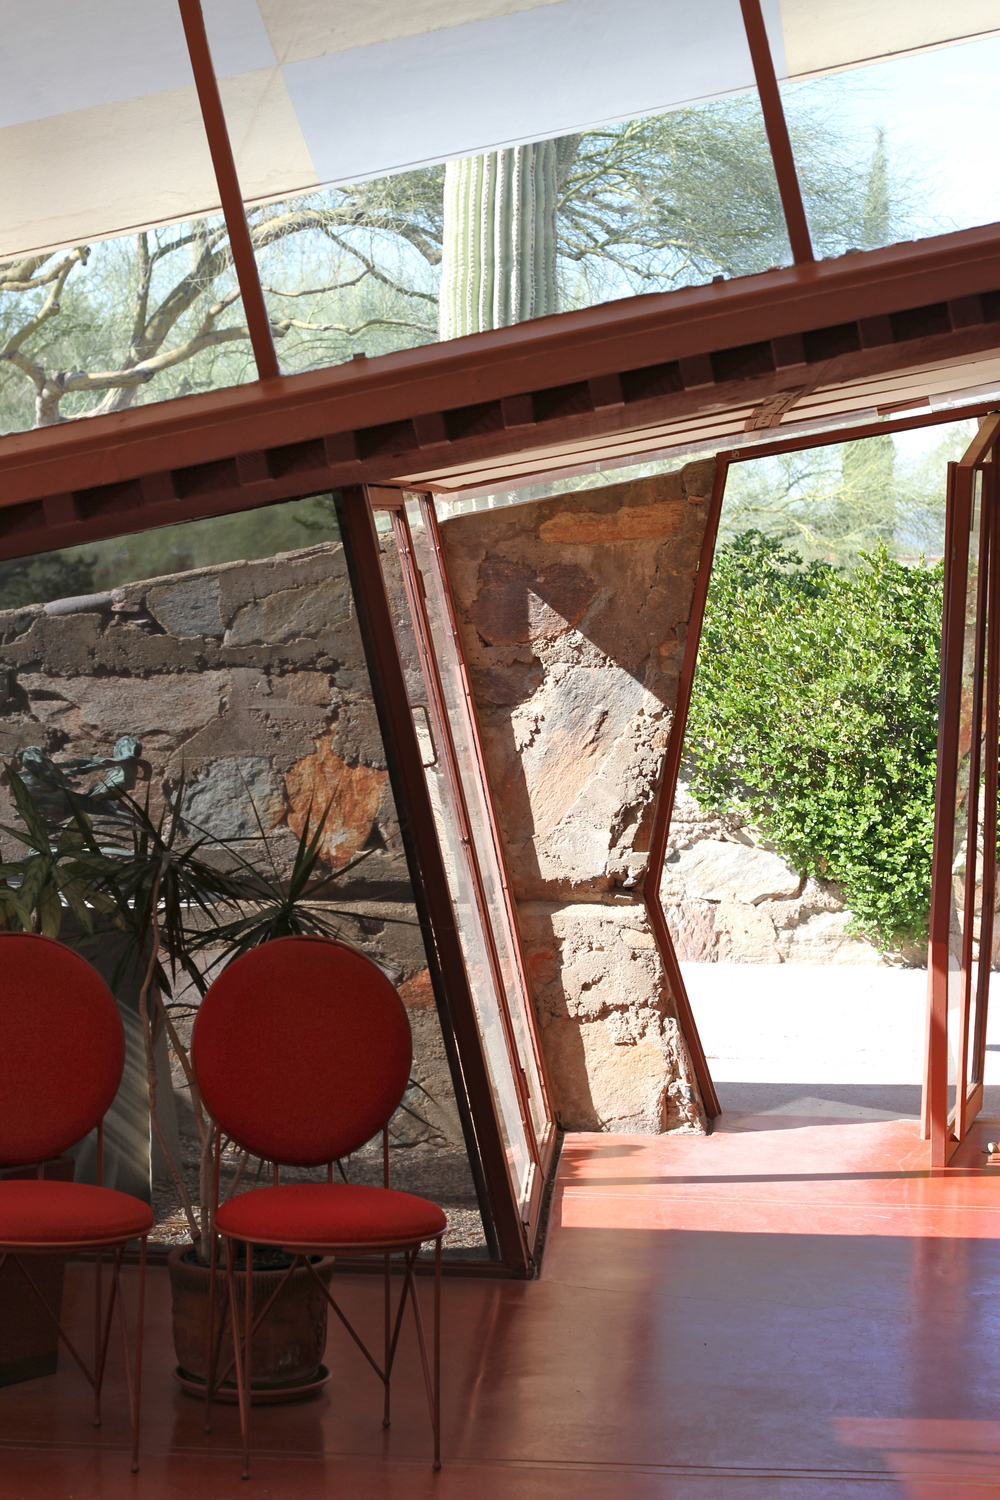 Taliesin West, Frank Lloyd Wright, Scottsdale, AZ.